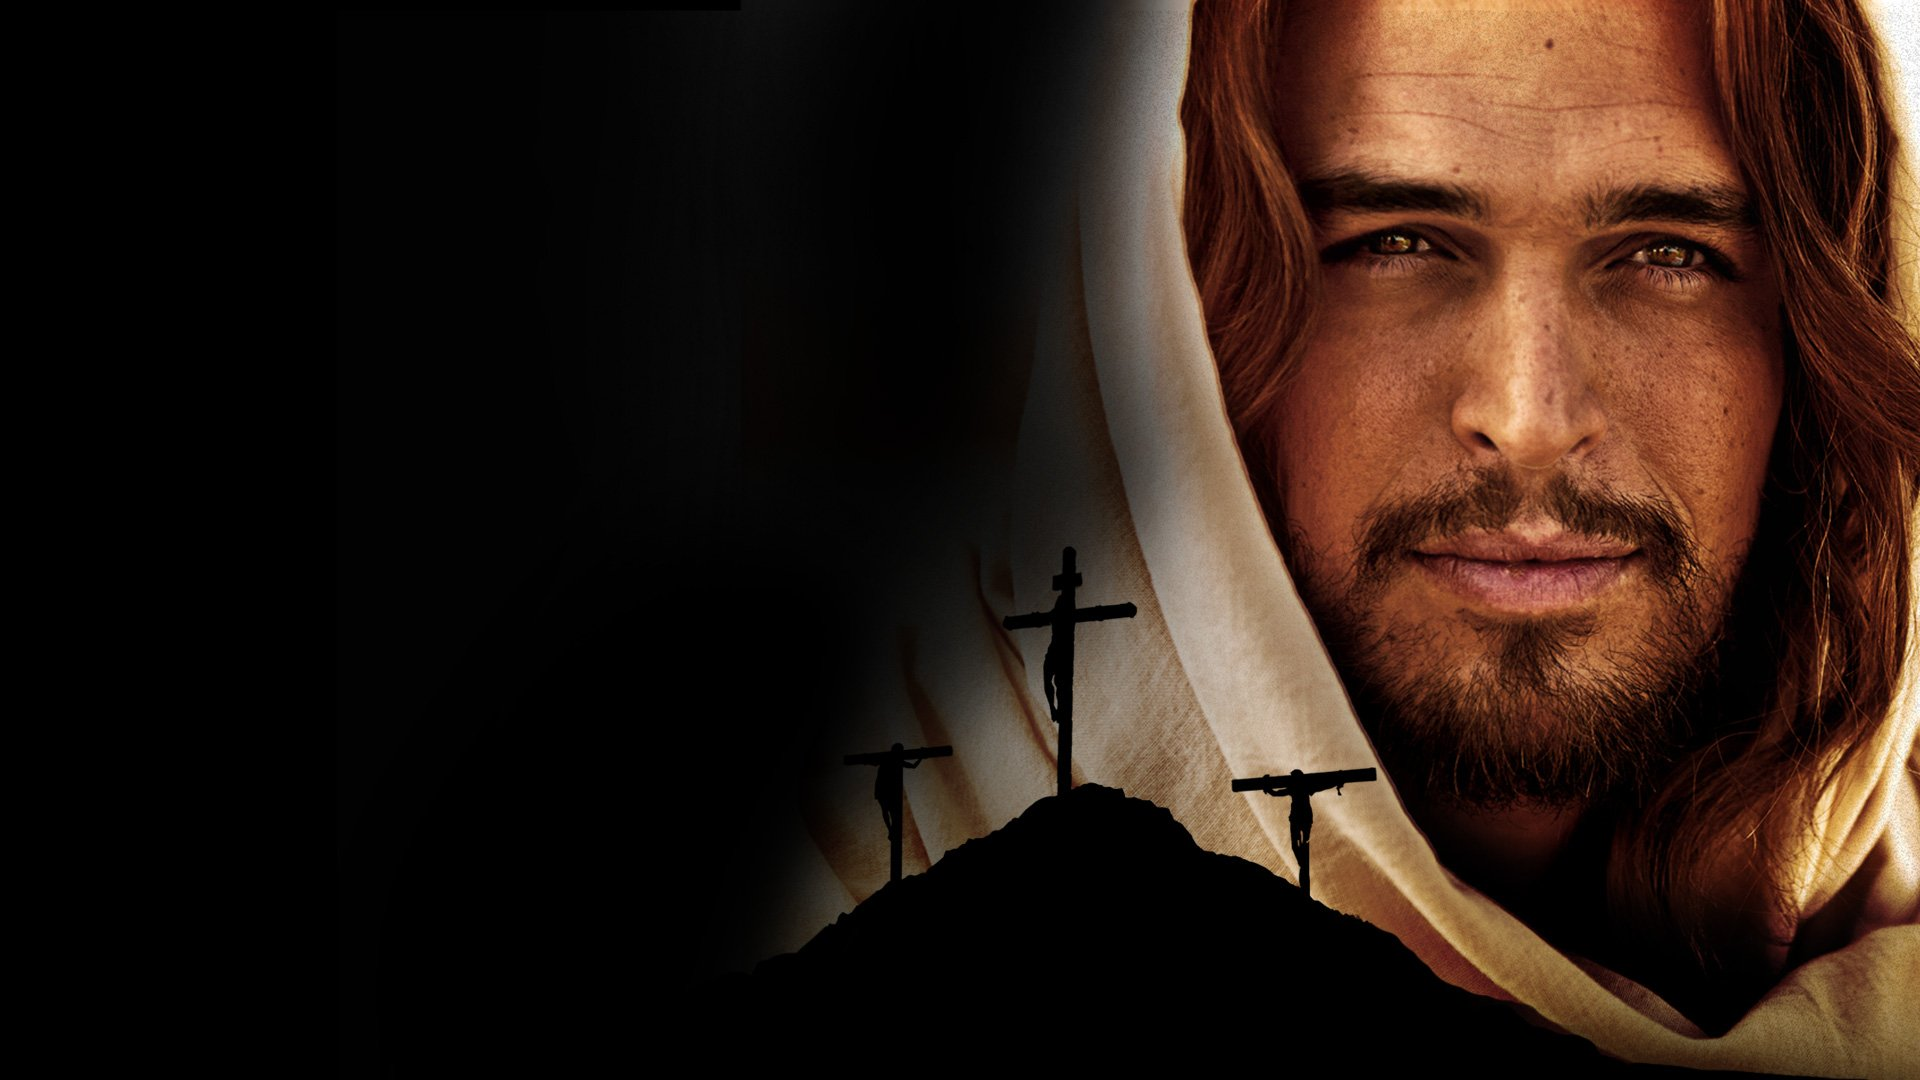 jesus christ wallpaper backgrounds turnback to god - HD 1920×1080